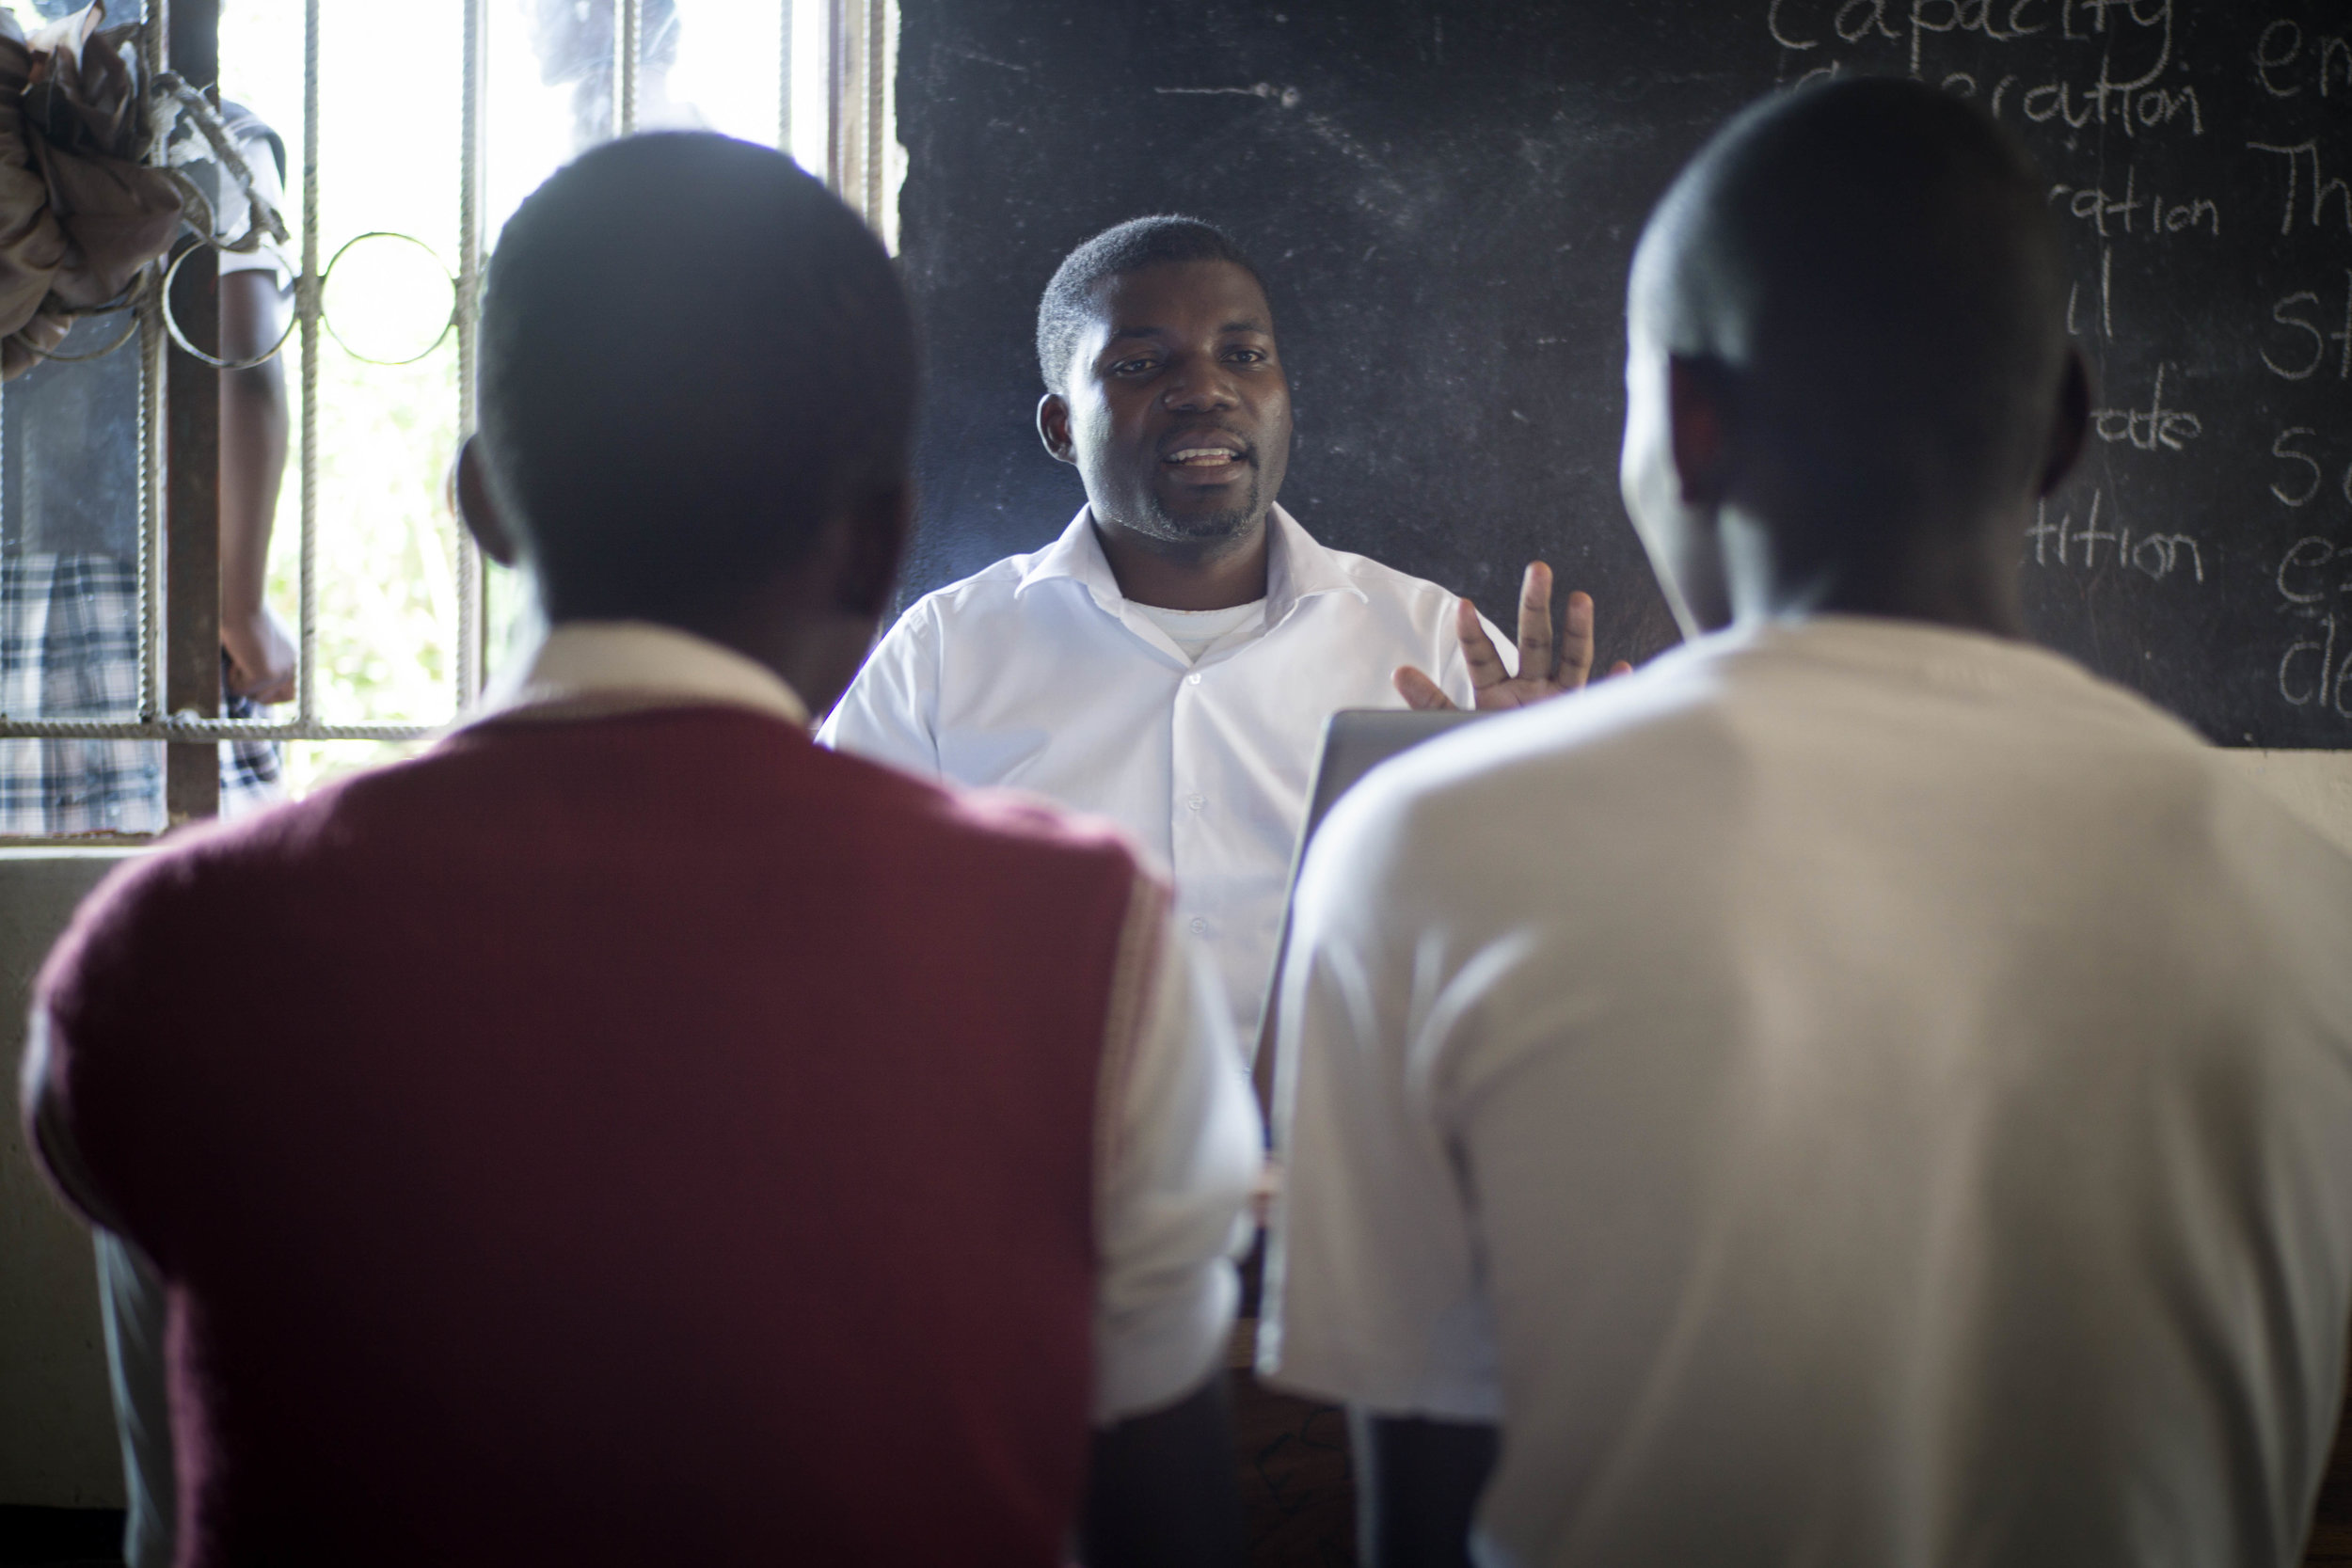 Fred, in February 2019, leads a Boy Talk discussion with the youth center's young men. .